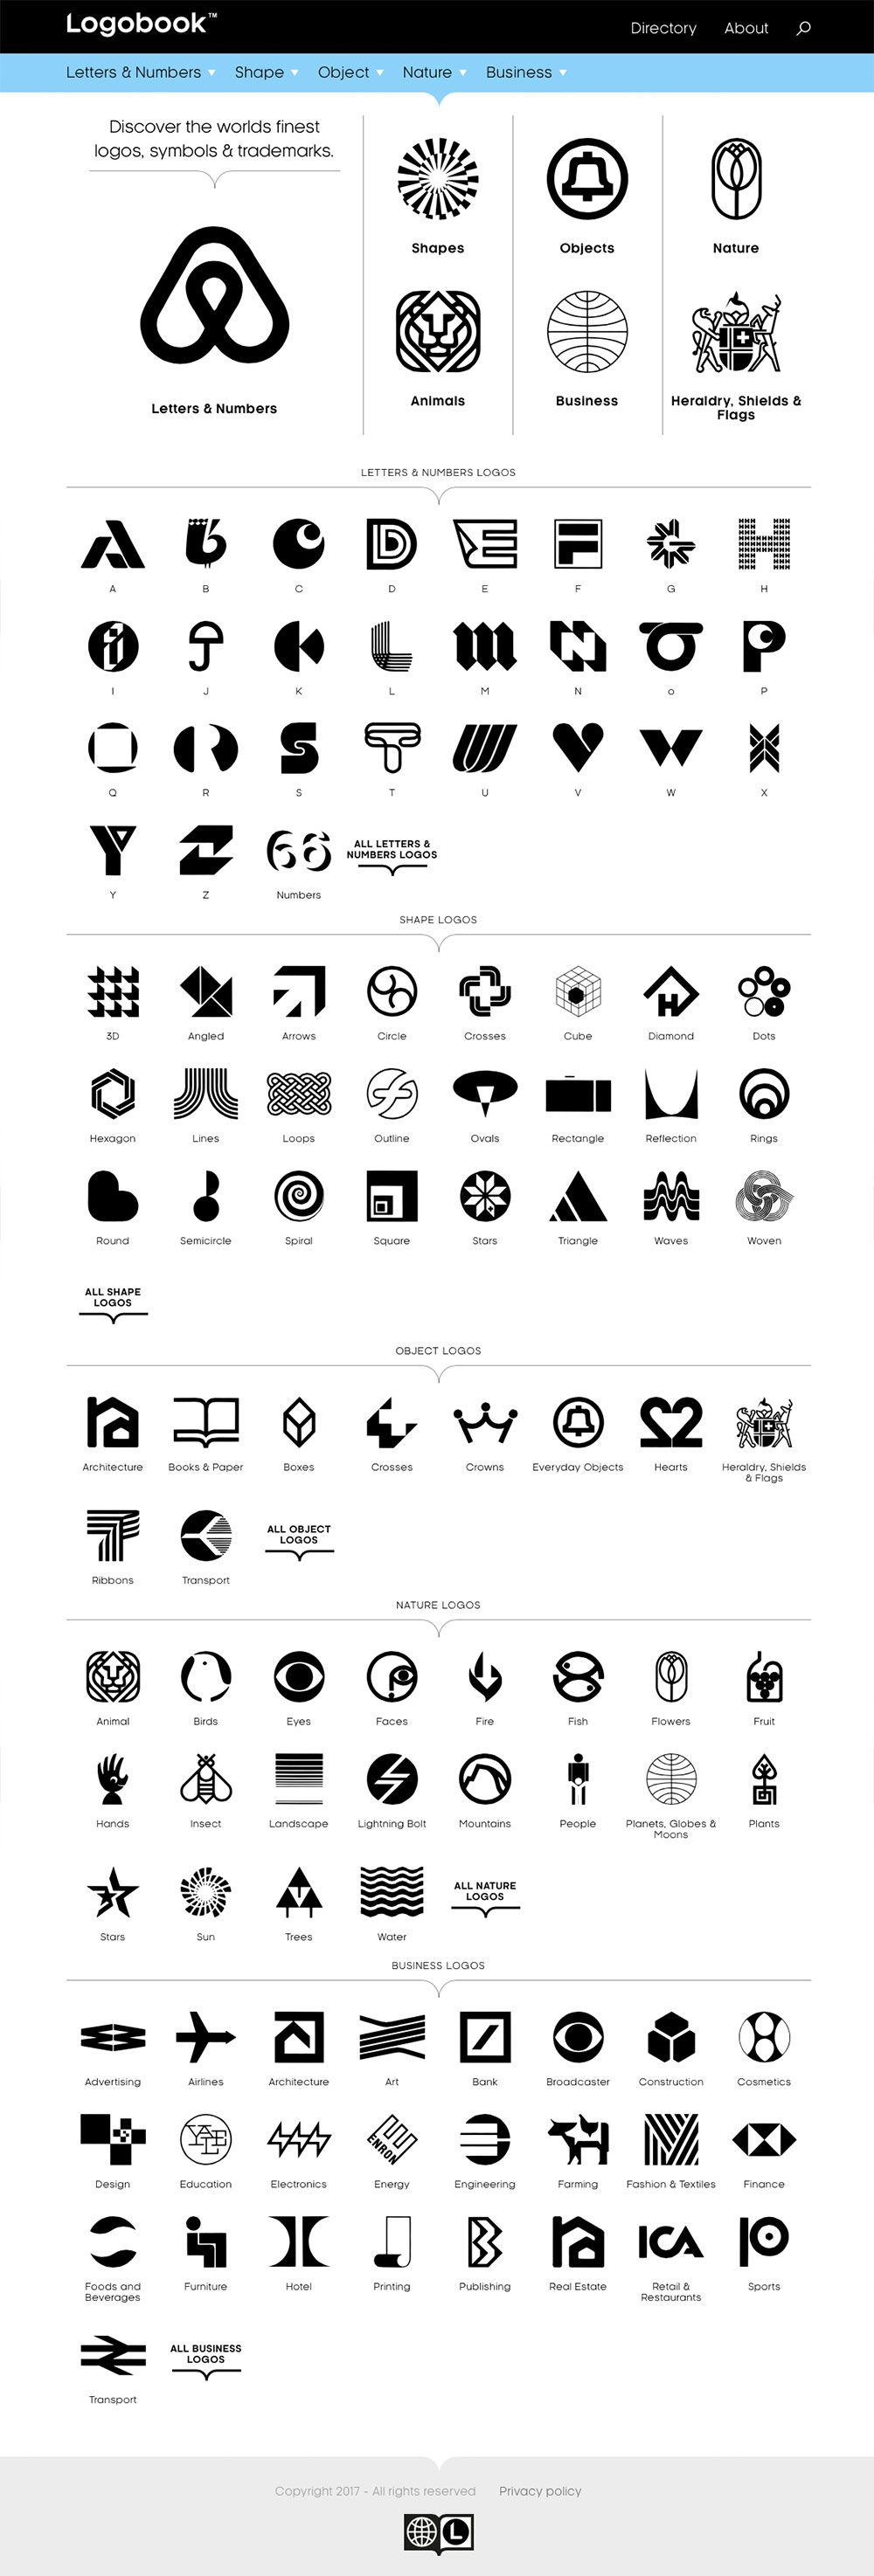 Logobook archives the finest old and new logos | Logo Design Love